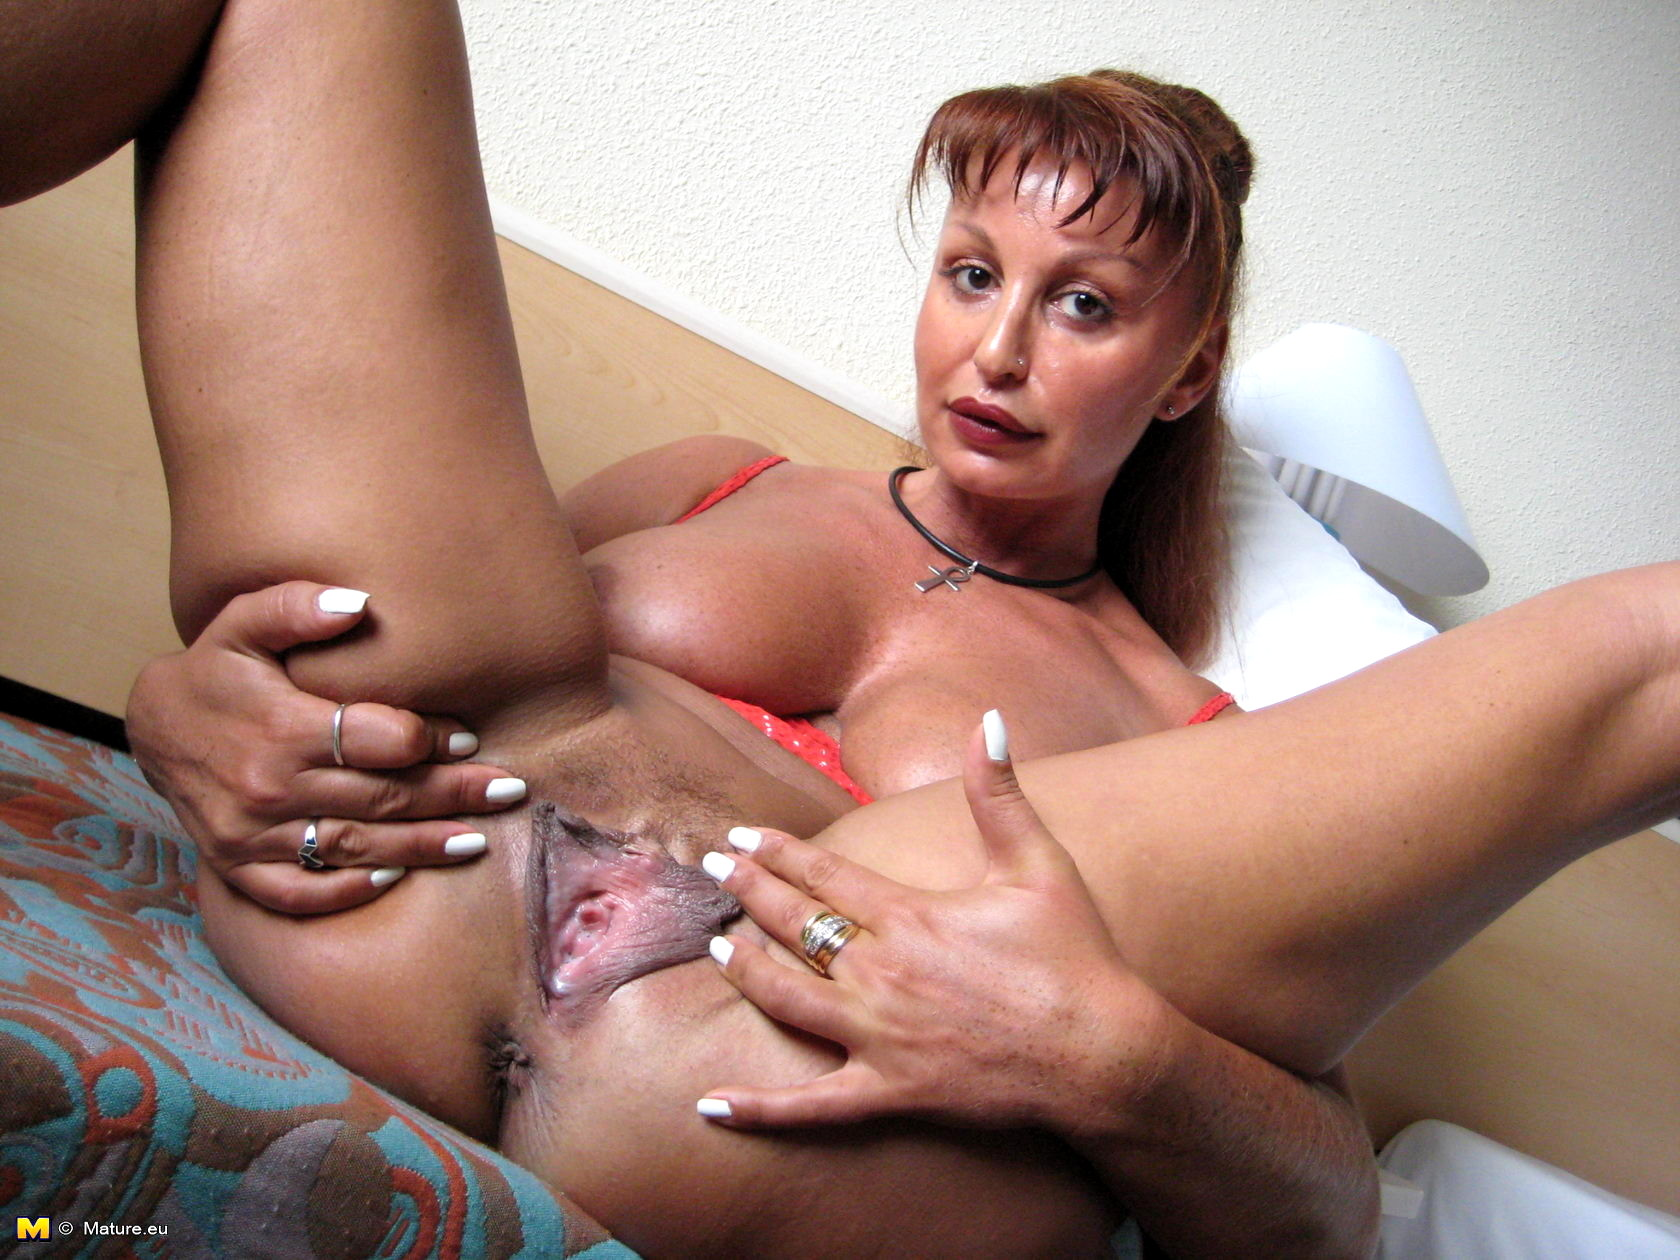 Search milf pussy on tube